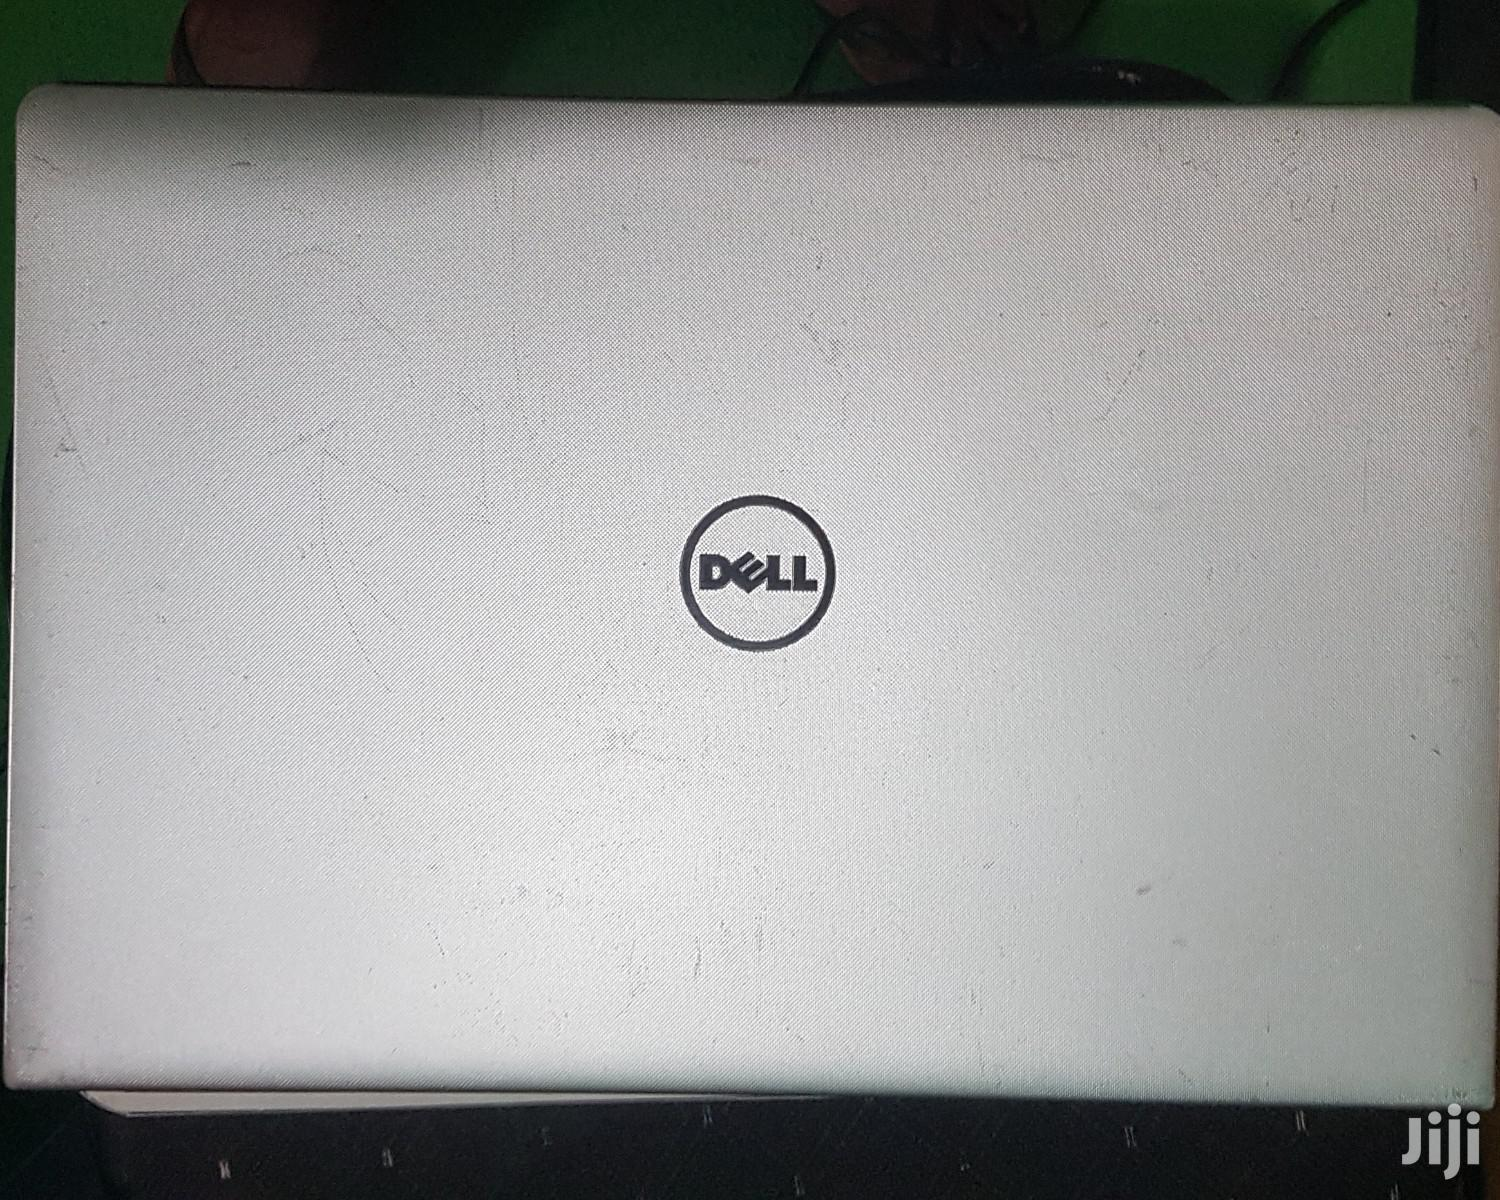 Archive: Laptop Dell Inspiron 15 5000 4GB Intel Core i5 HDD 750GB